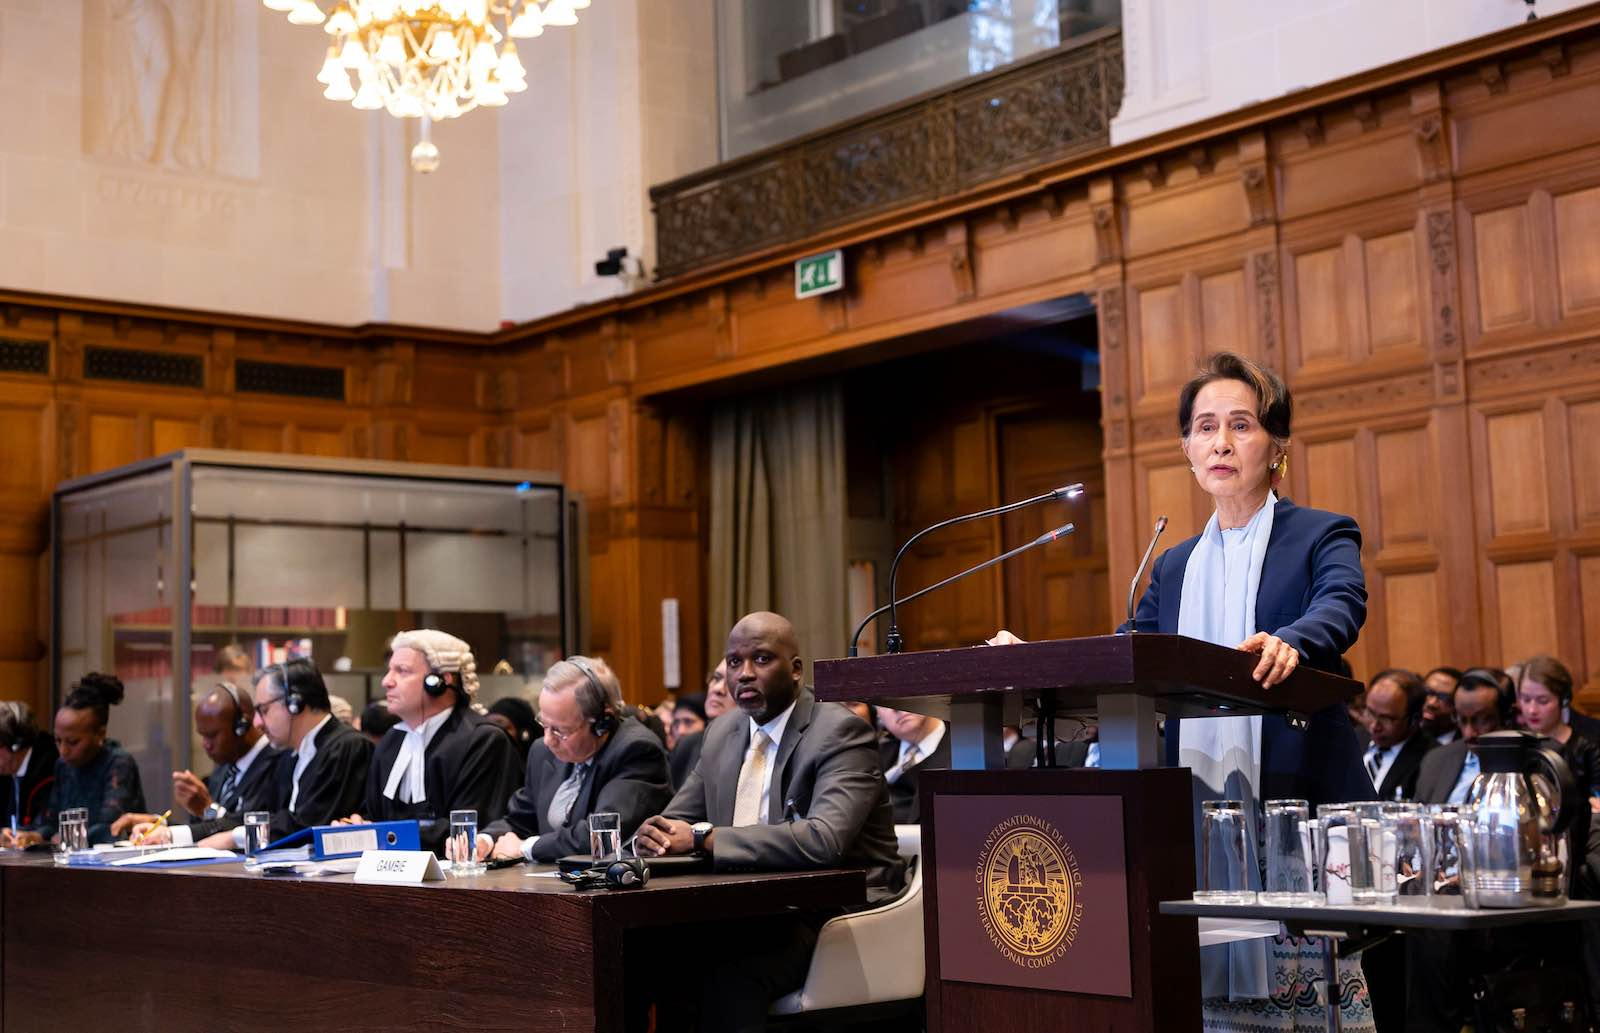 Aung Suu Kyi defends Myanmar against accusations of genocide against Rohingya at the top UN court in The Hague (Photo: International Court of Justice via Getty Images)